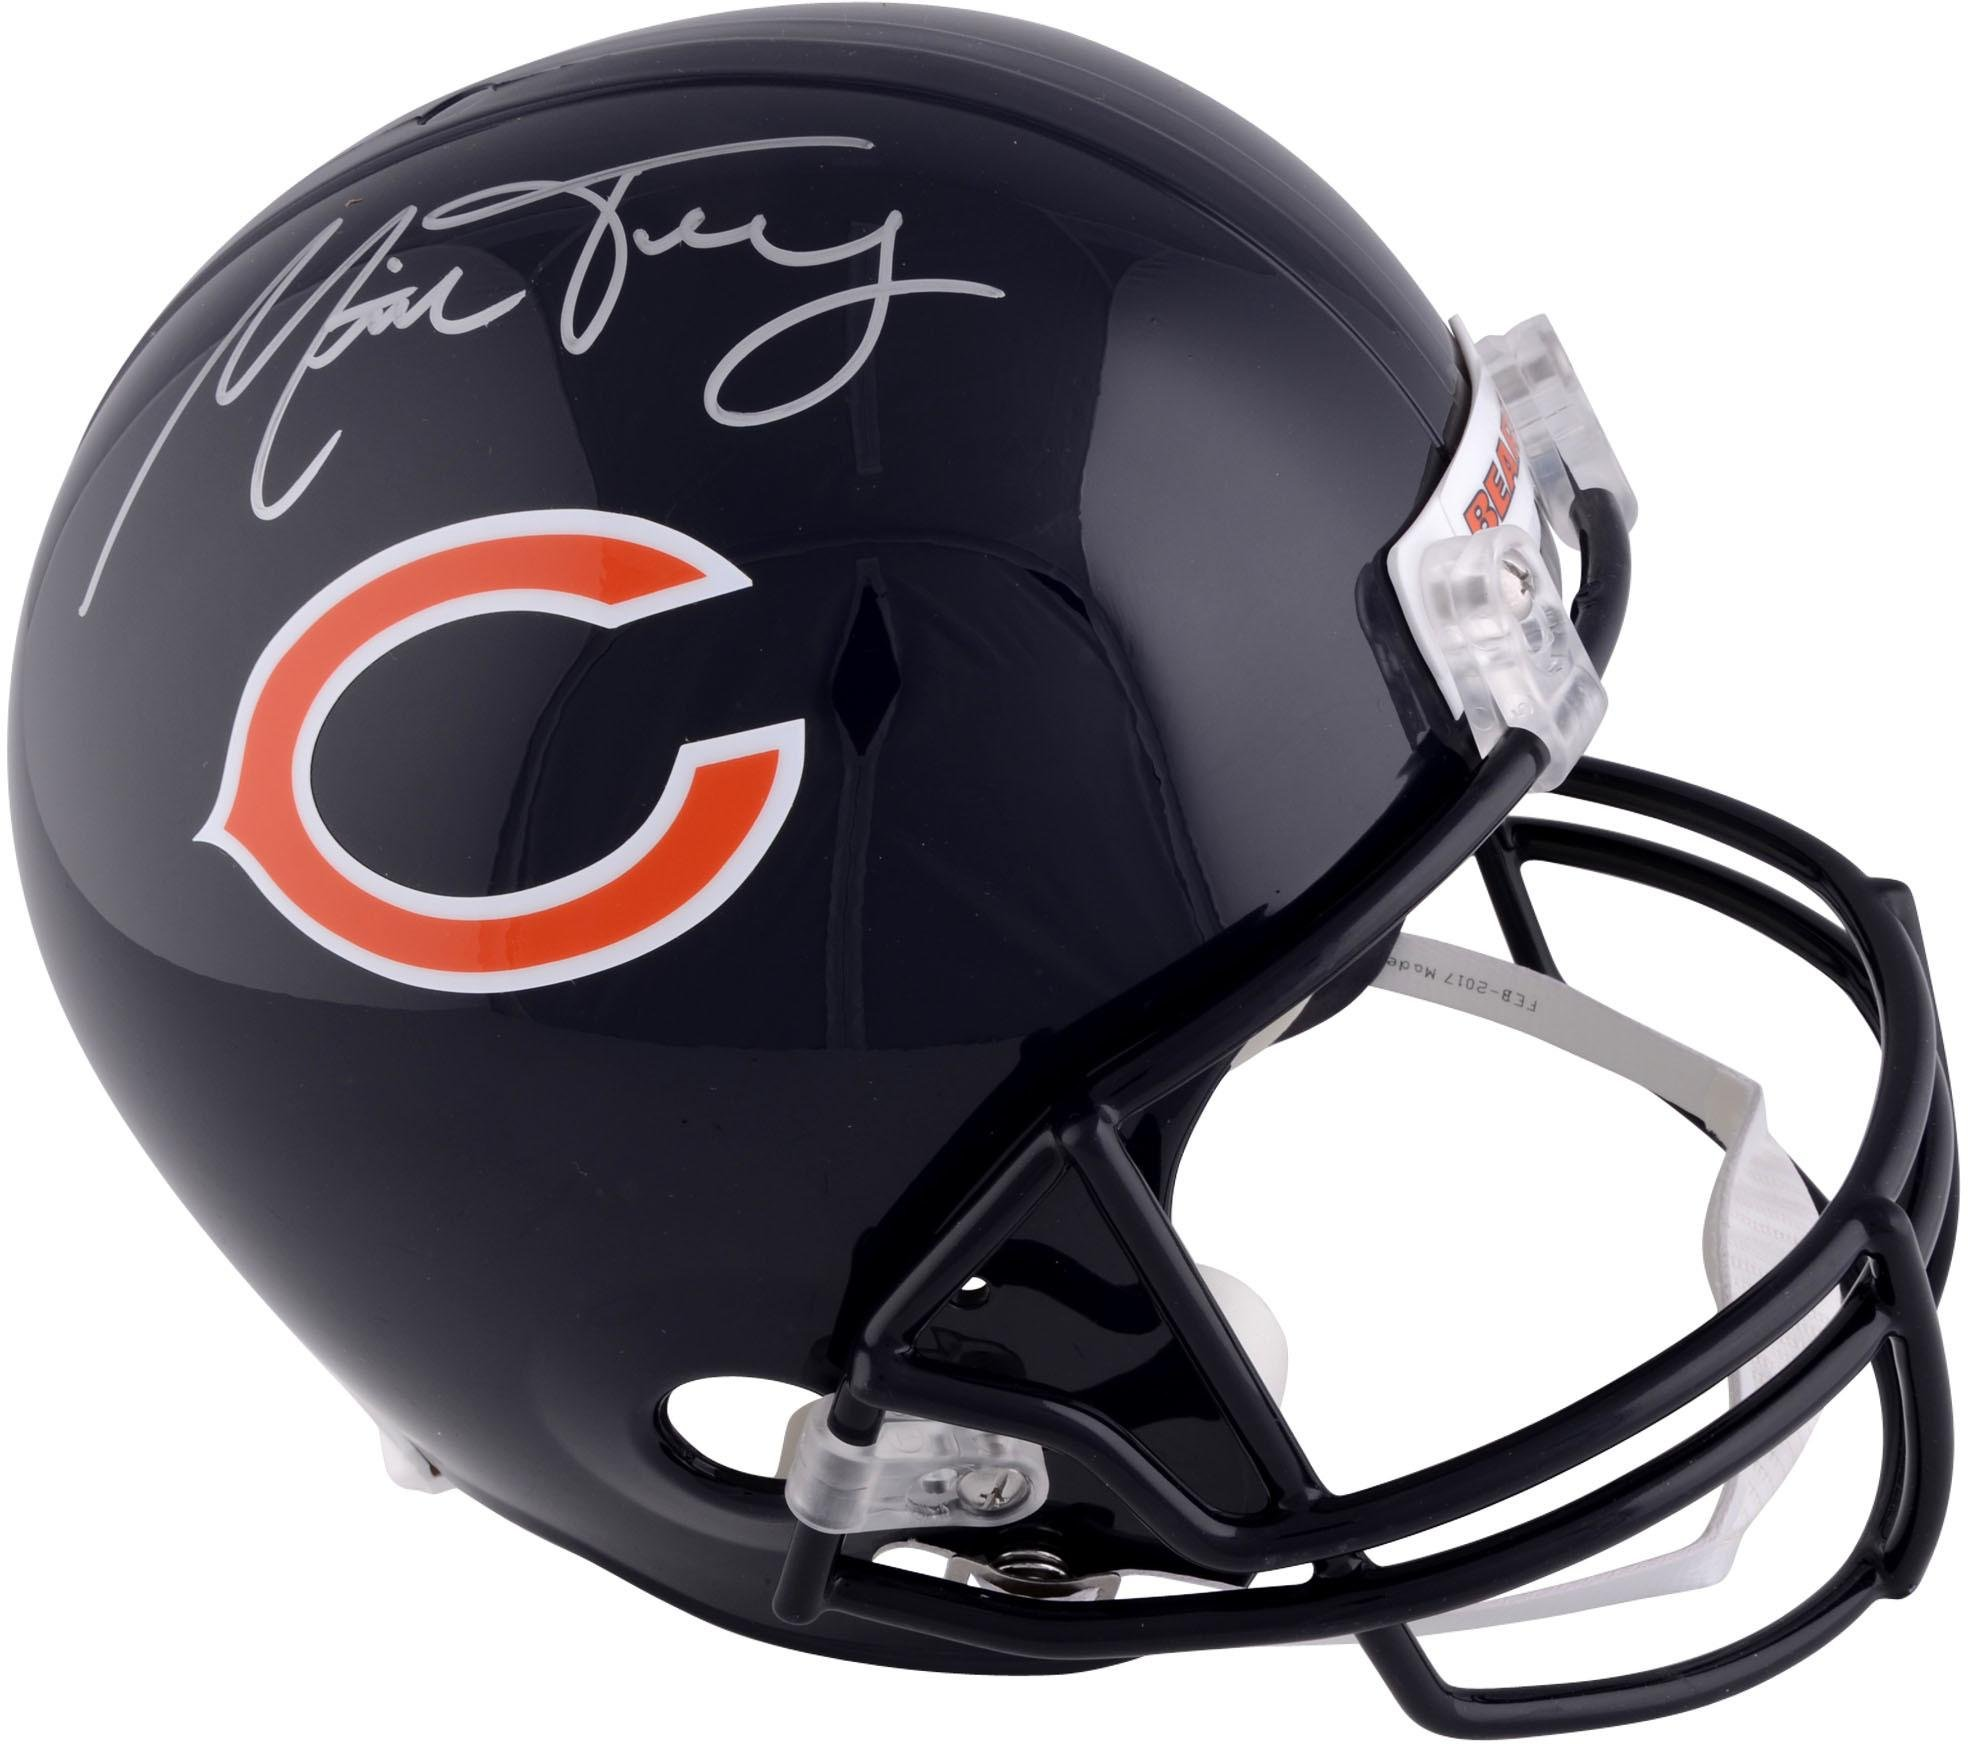 Mitchell Trubisky Chicago Bears Autographed Riddell Replica Helmet Fanatics Authentic Certified Autographed NFL Helmets